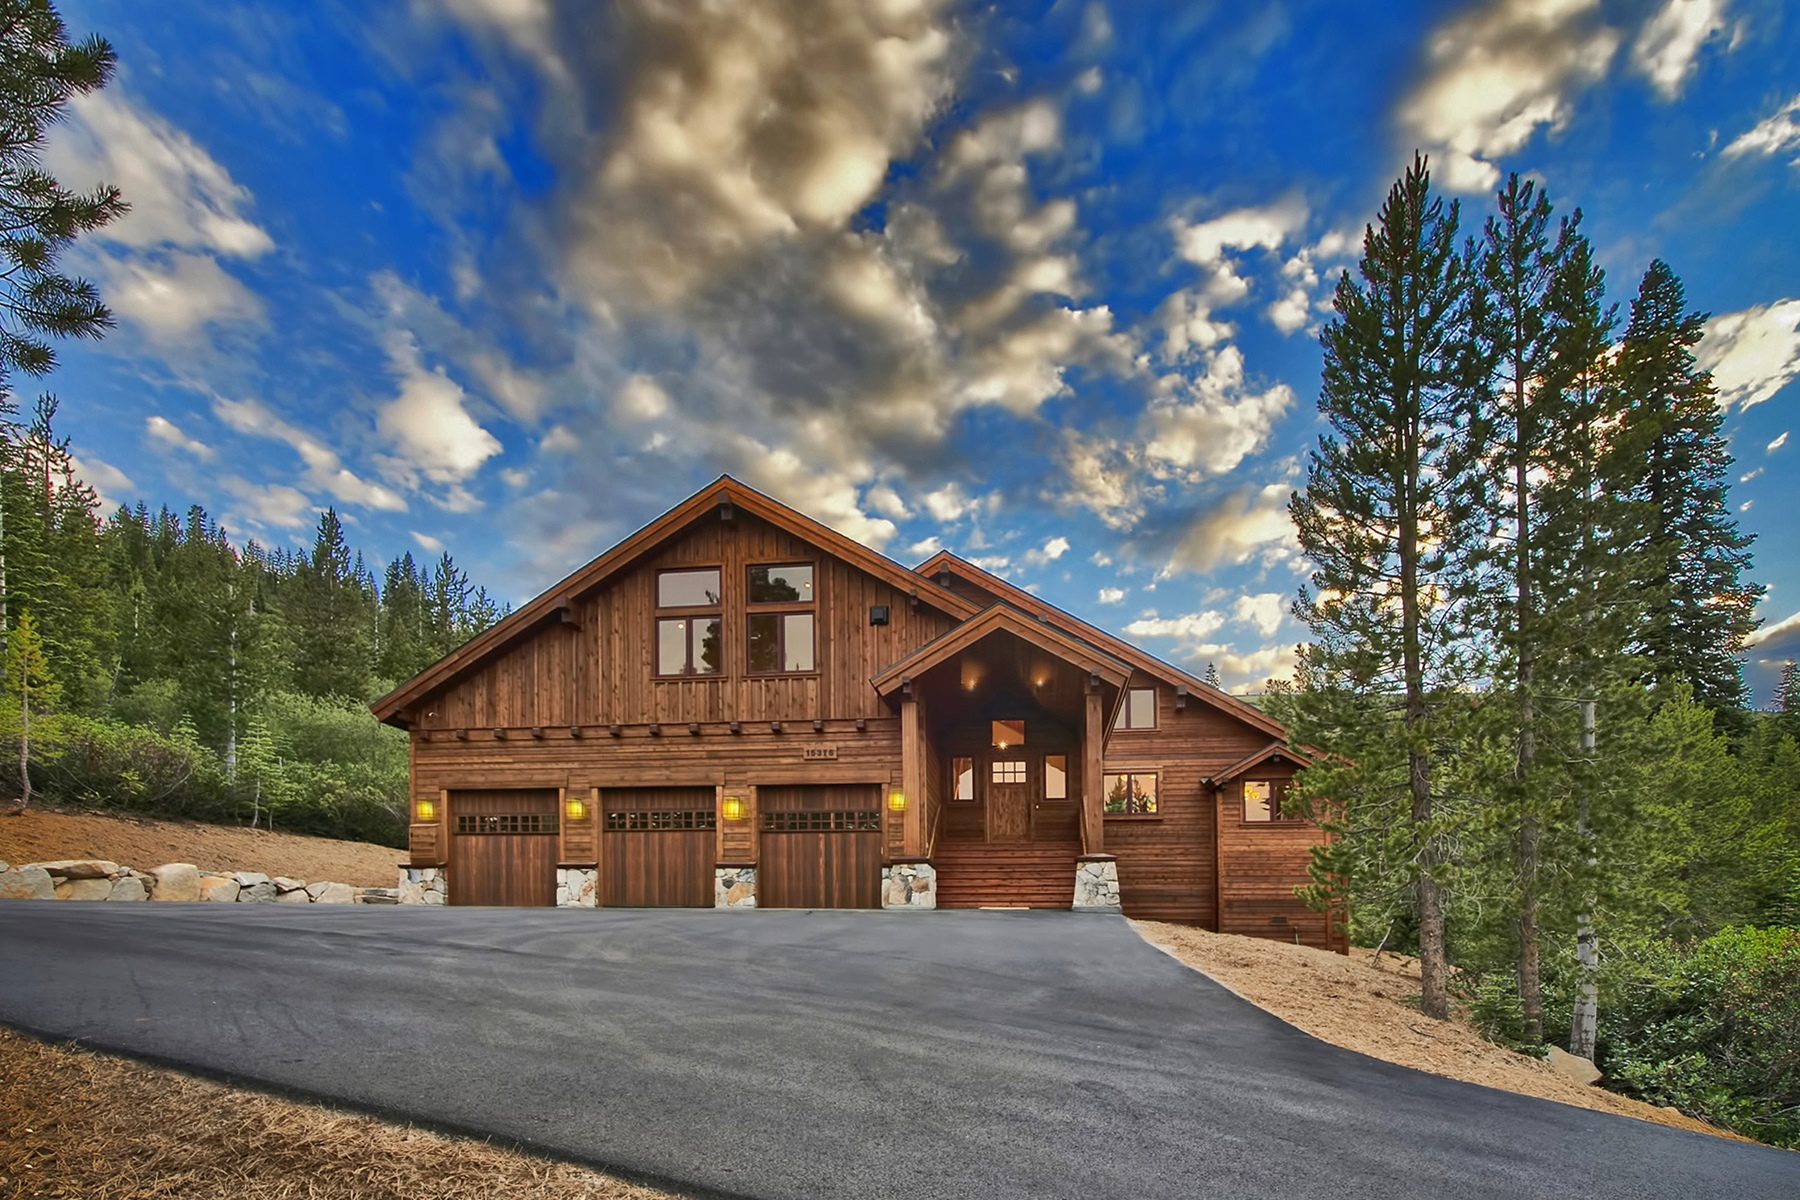 Single Family Home for Active at 15376 Skislope Way Truckee, California 96161 United States